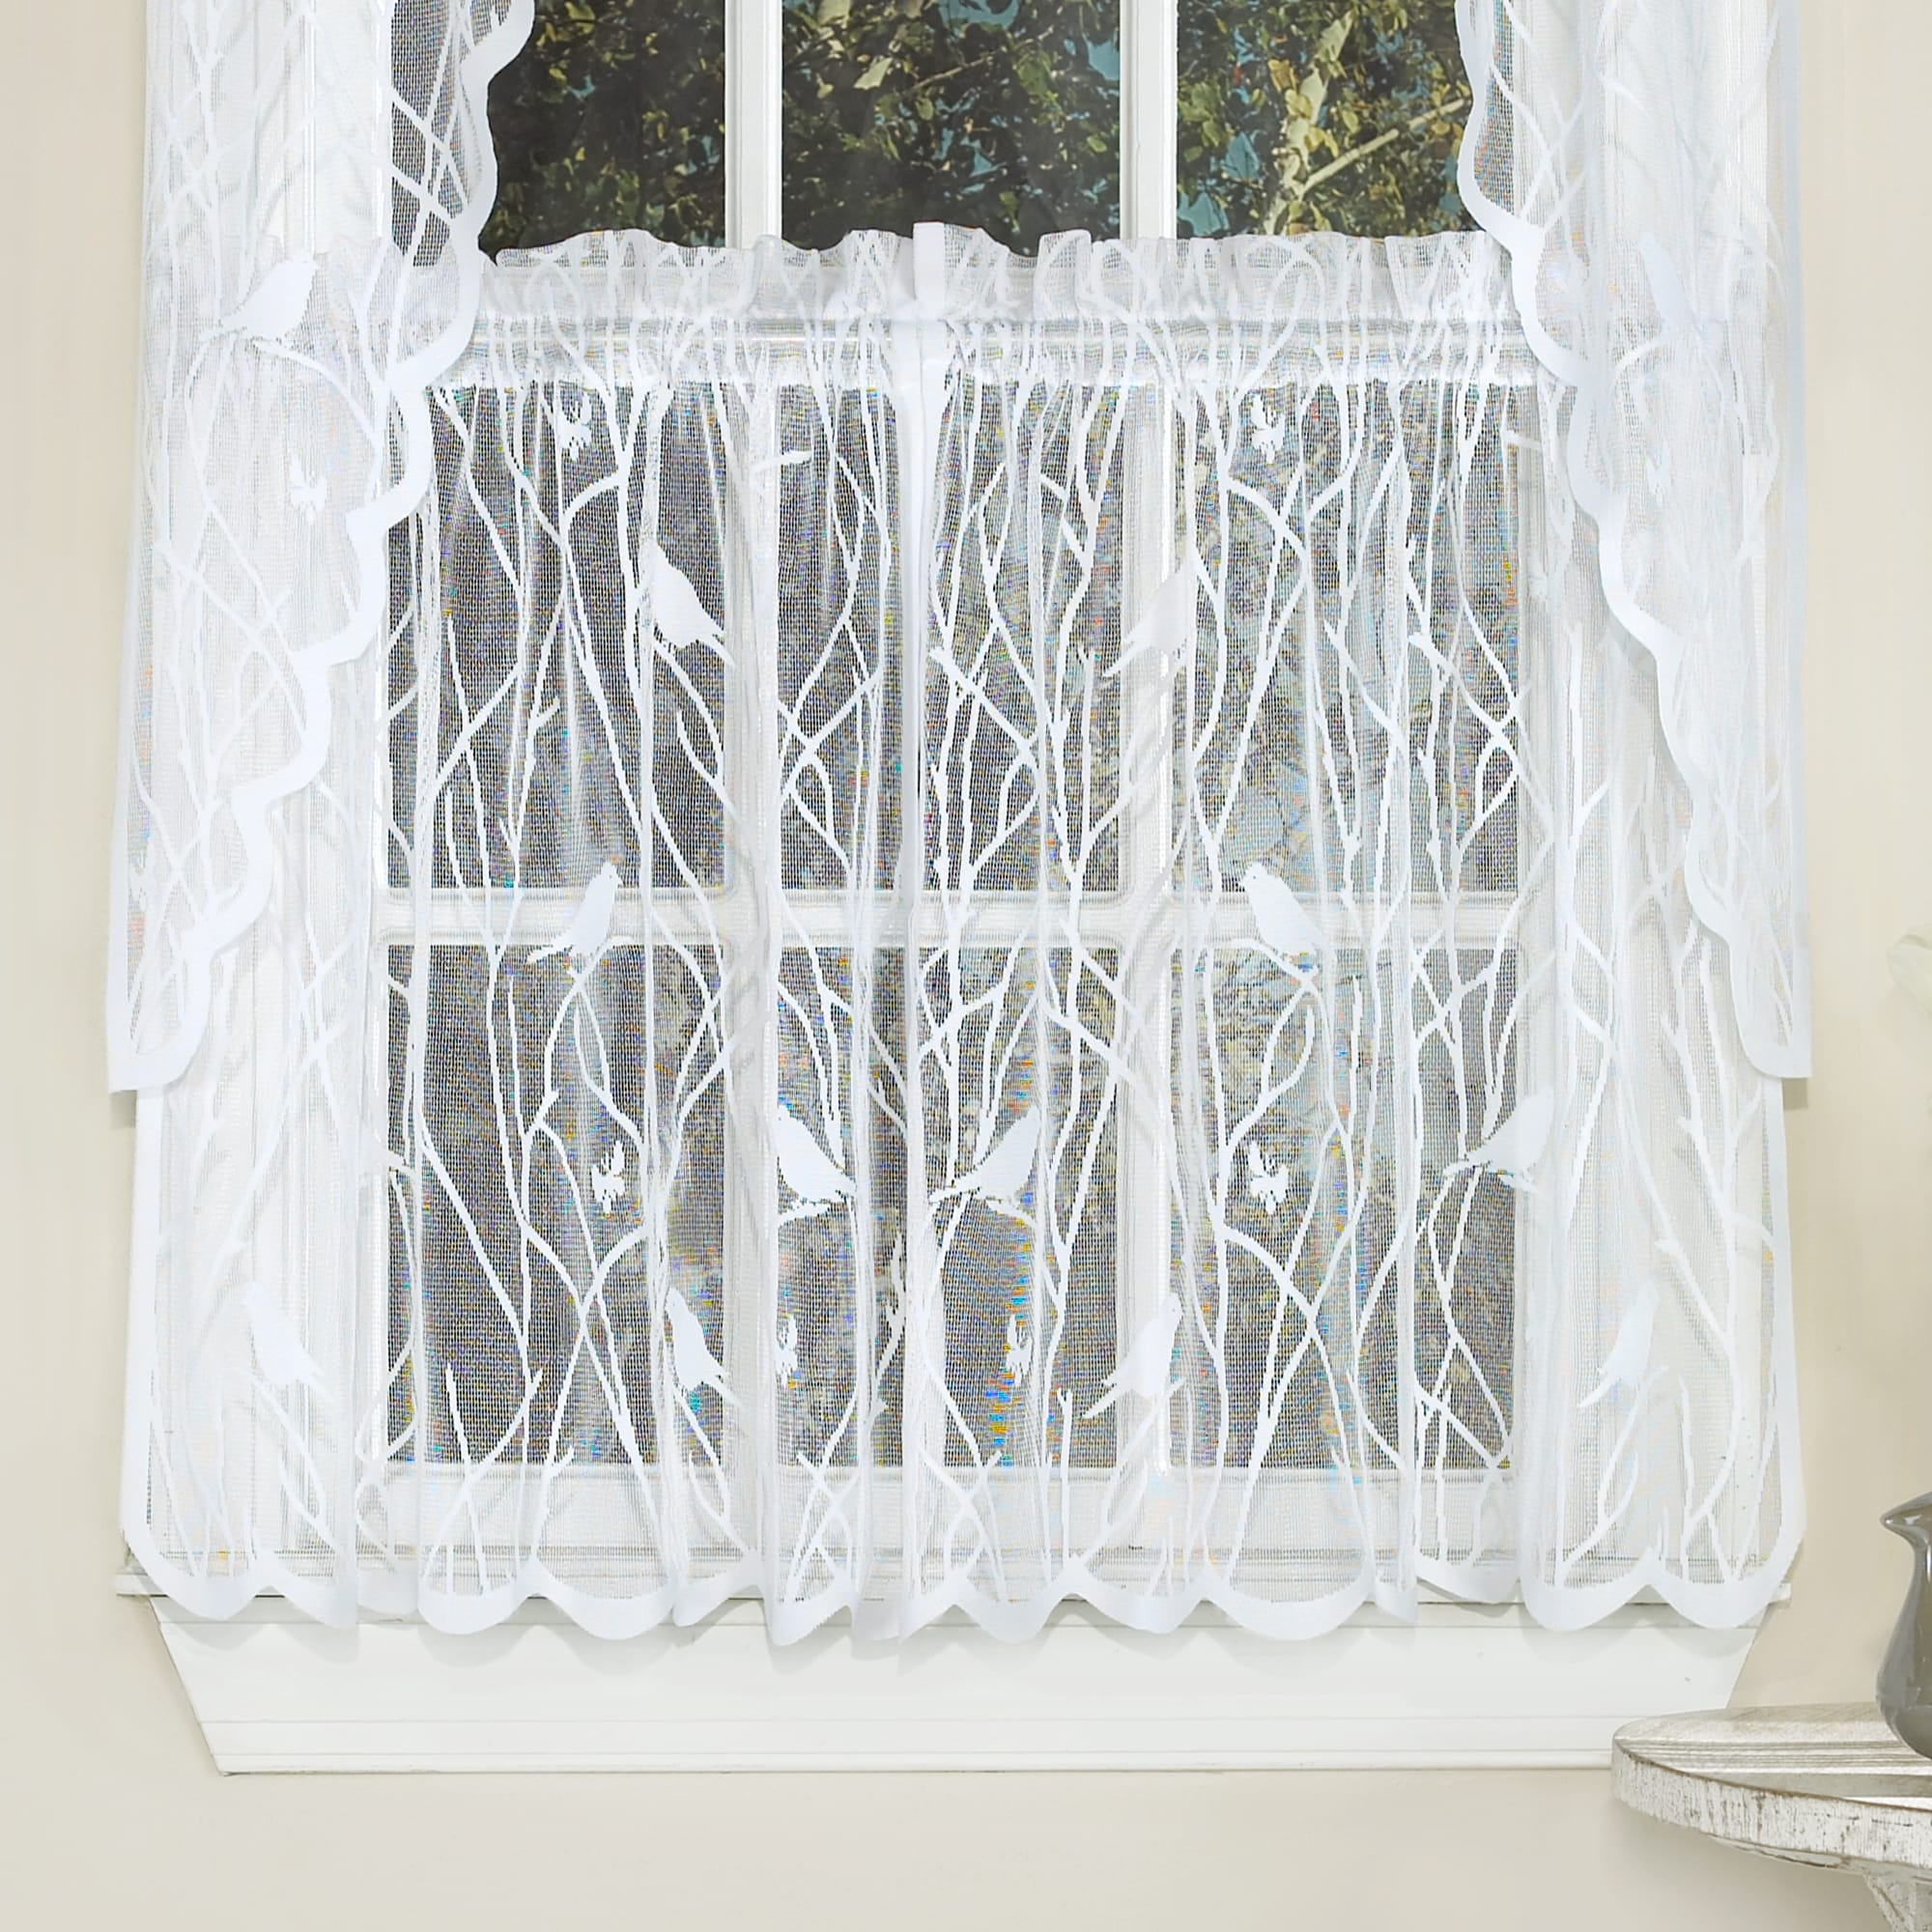 Shop White Knit Lace Bird Motif Window Curtain Tiers Valance And Swag Pair Options